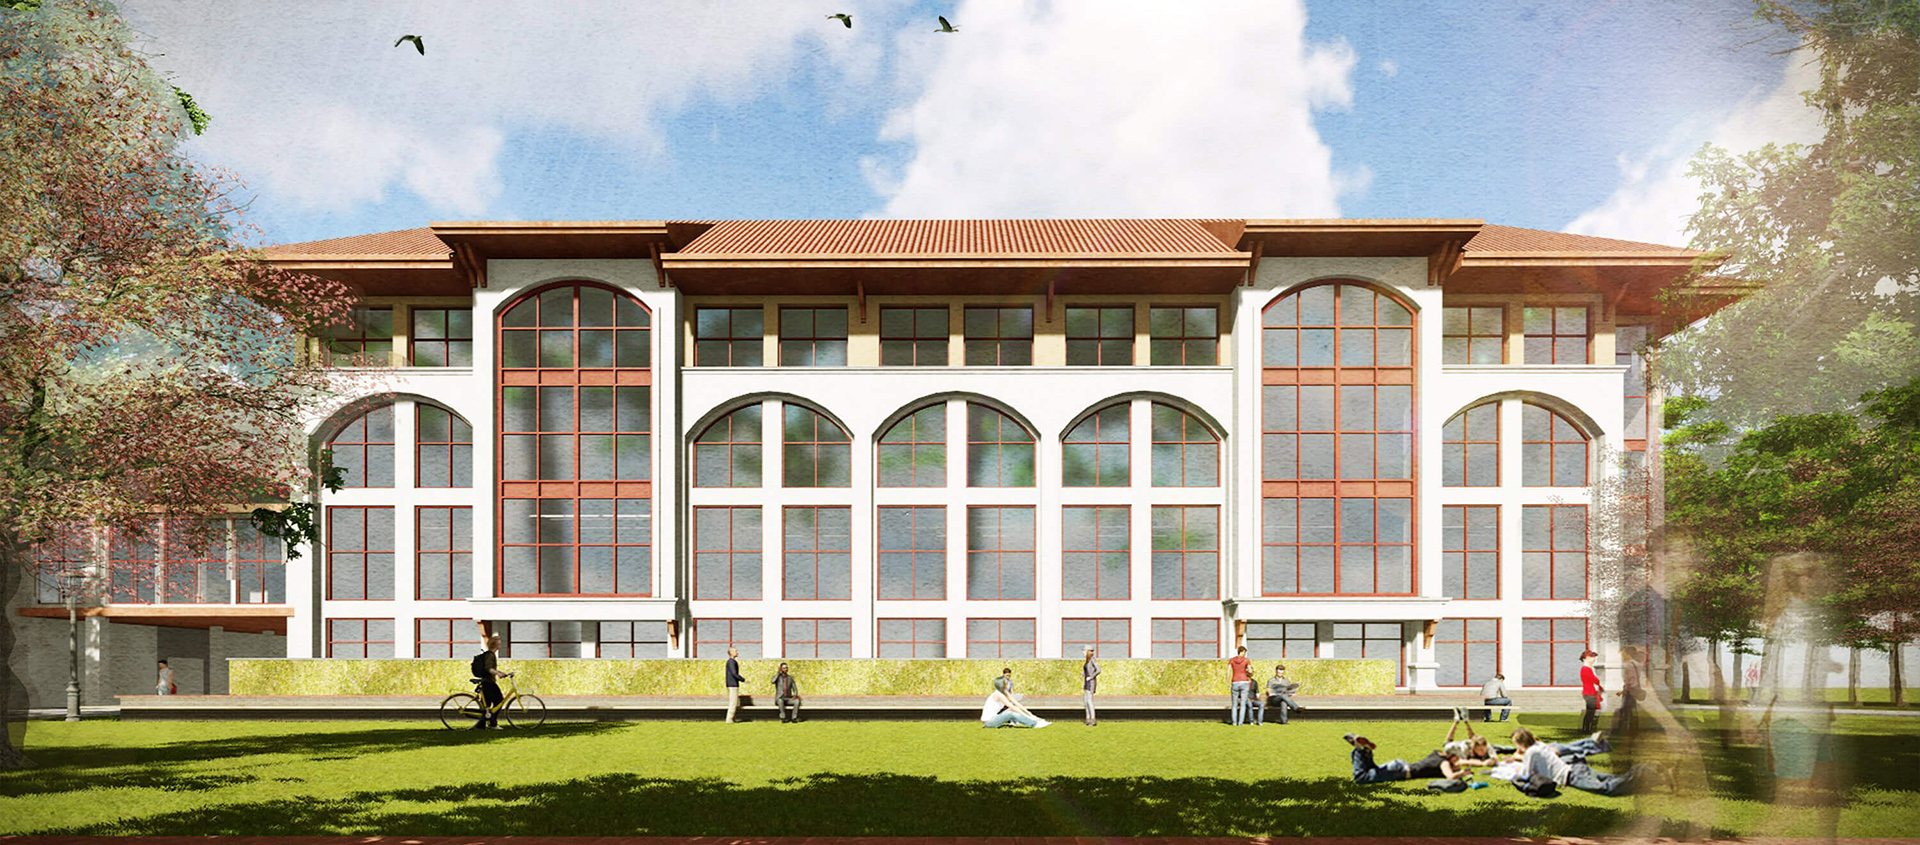 Montclair State University - Mallory Hall rendering